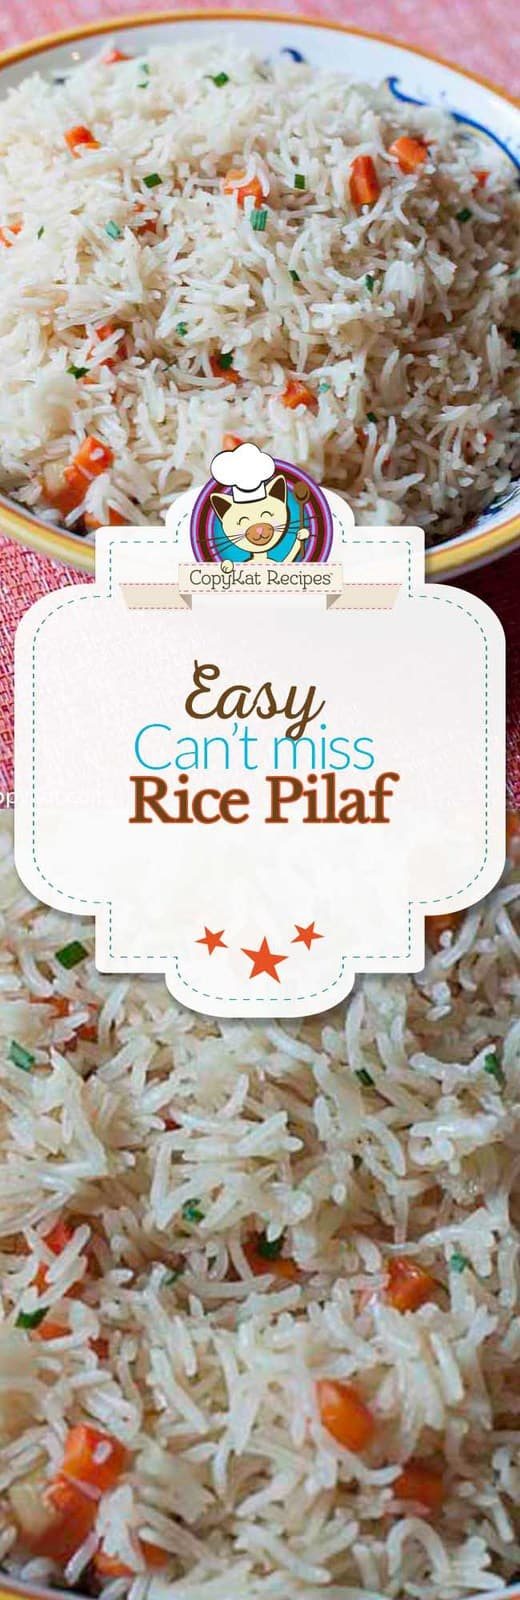 You can make easy to prepare rice pilaf with this easy recipe.  There is no need to buy packages of rice mix anymore.